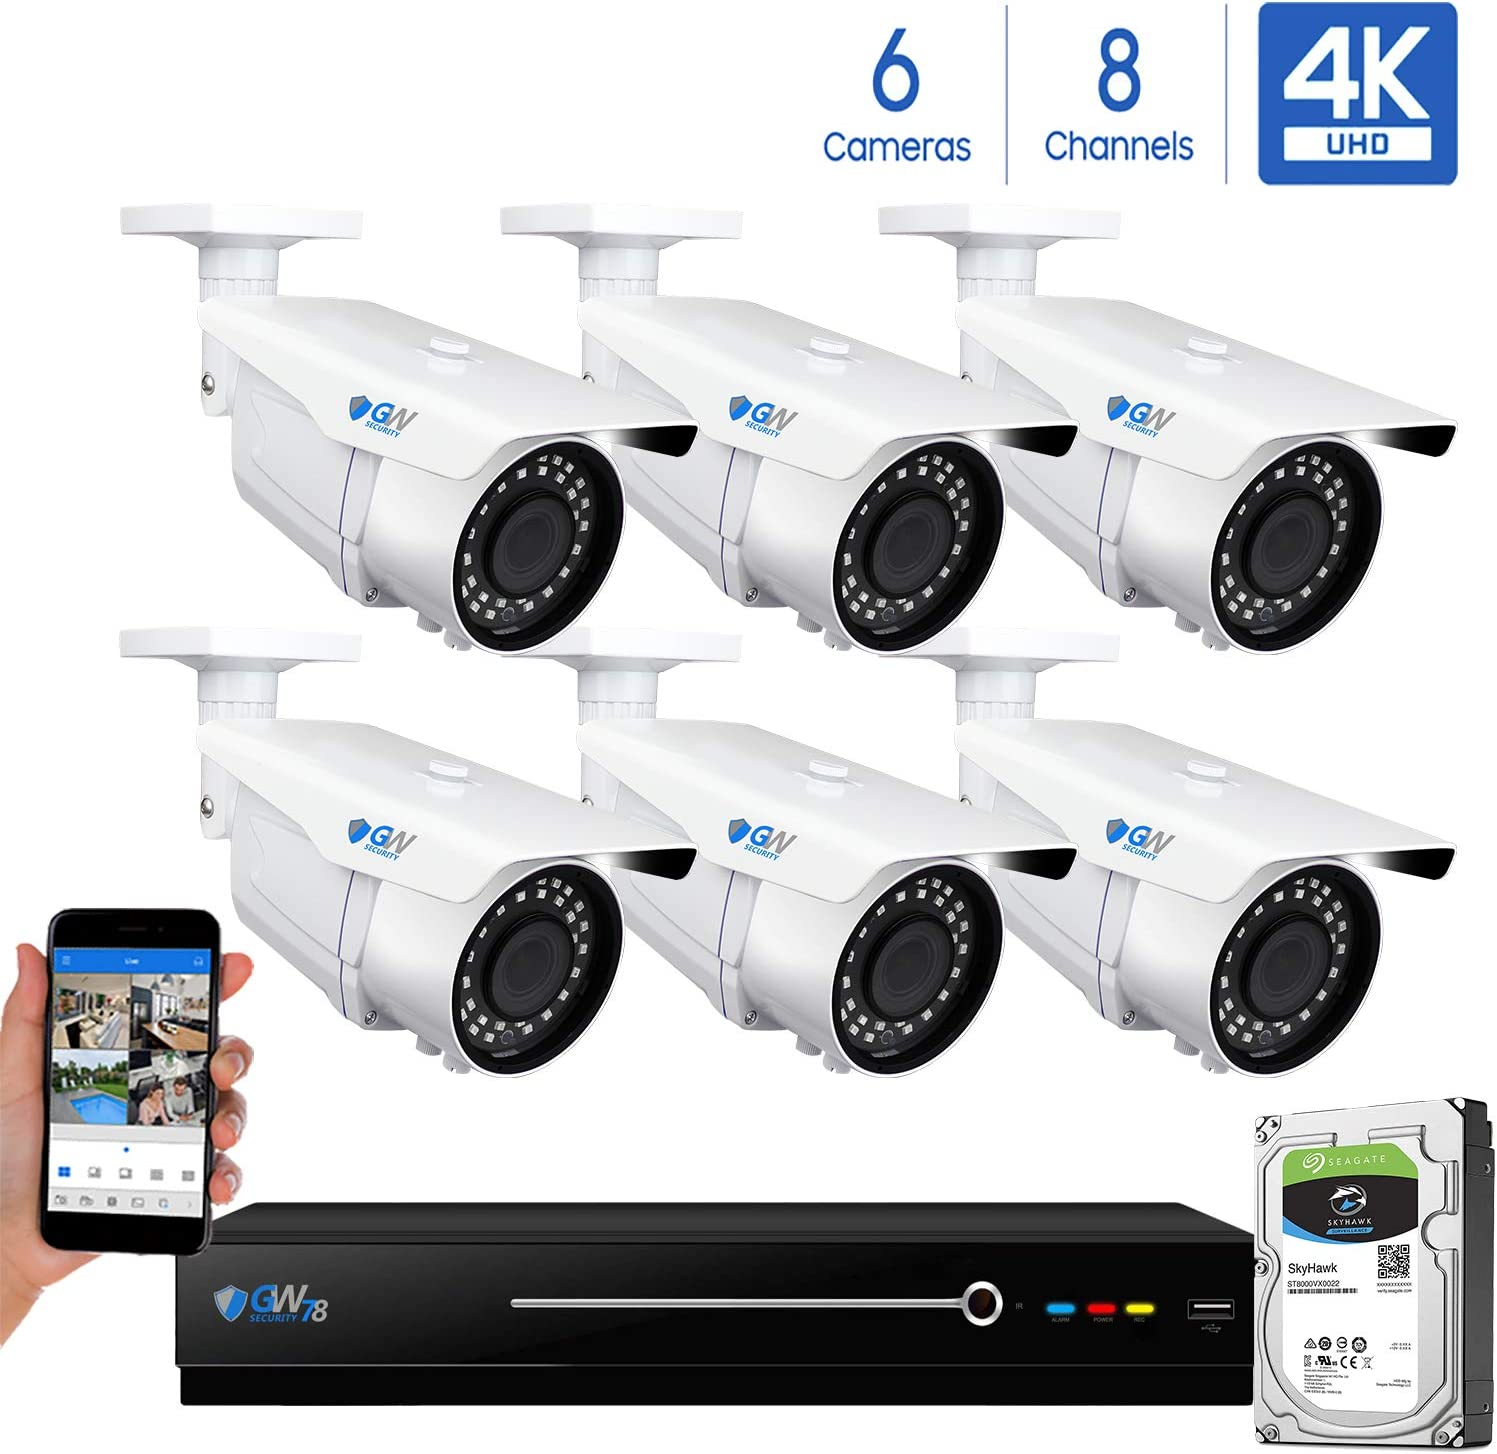 GW 8 Channel 4K NVR 8MP 3840×2160 H.265 PoE Security Camera System – 6 x UltraHD 4K 2.7 13.5mm Varifocal Zoom 196ft IR 2160p IP Cameras – 8 Megapixel Four Times The Resolution of 1080p Full HD